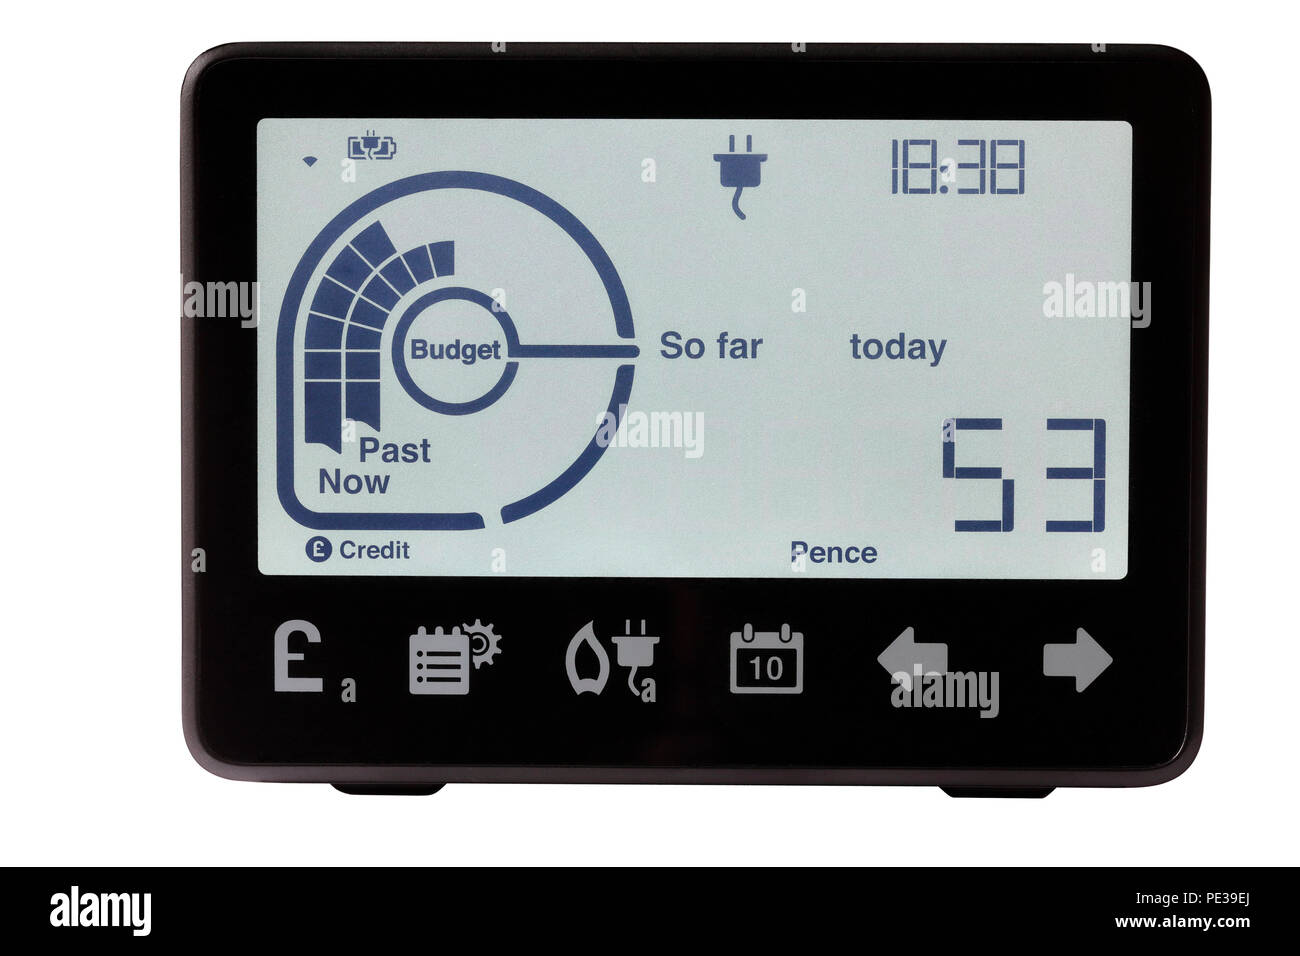 Smart Meter In House Display isolated on a white background - Stock Image